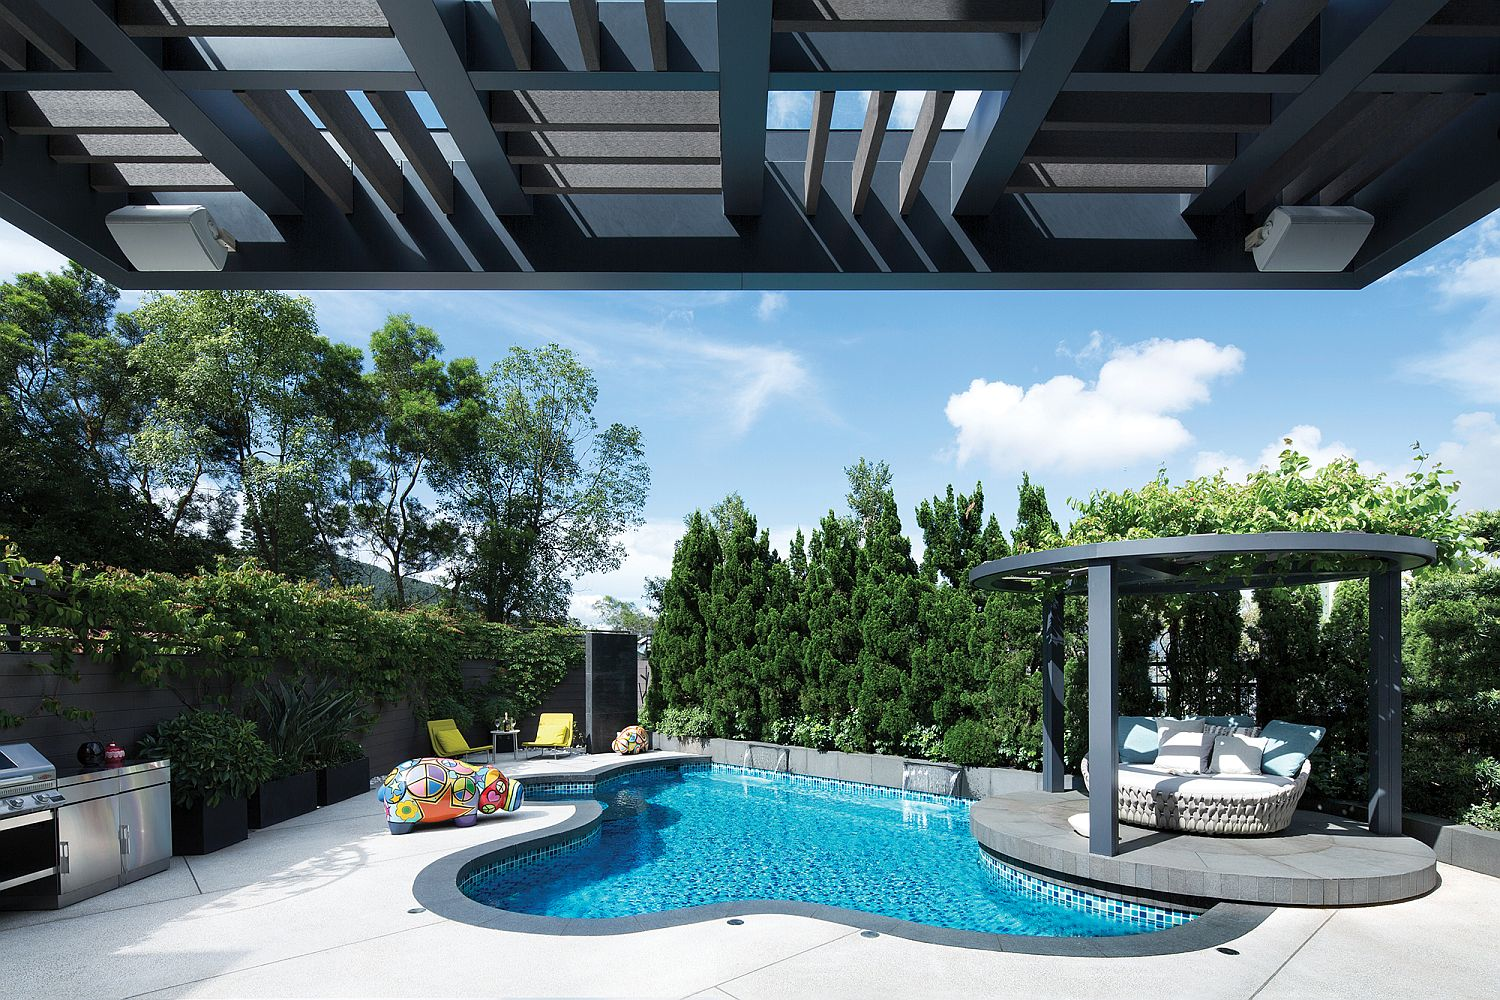 Contemporary pool with an irregular design and a snazzy pergola next to it